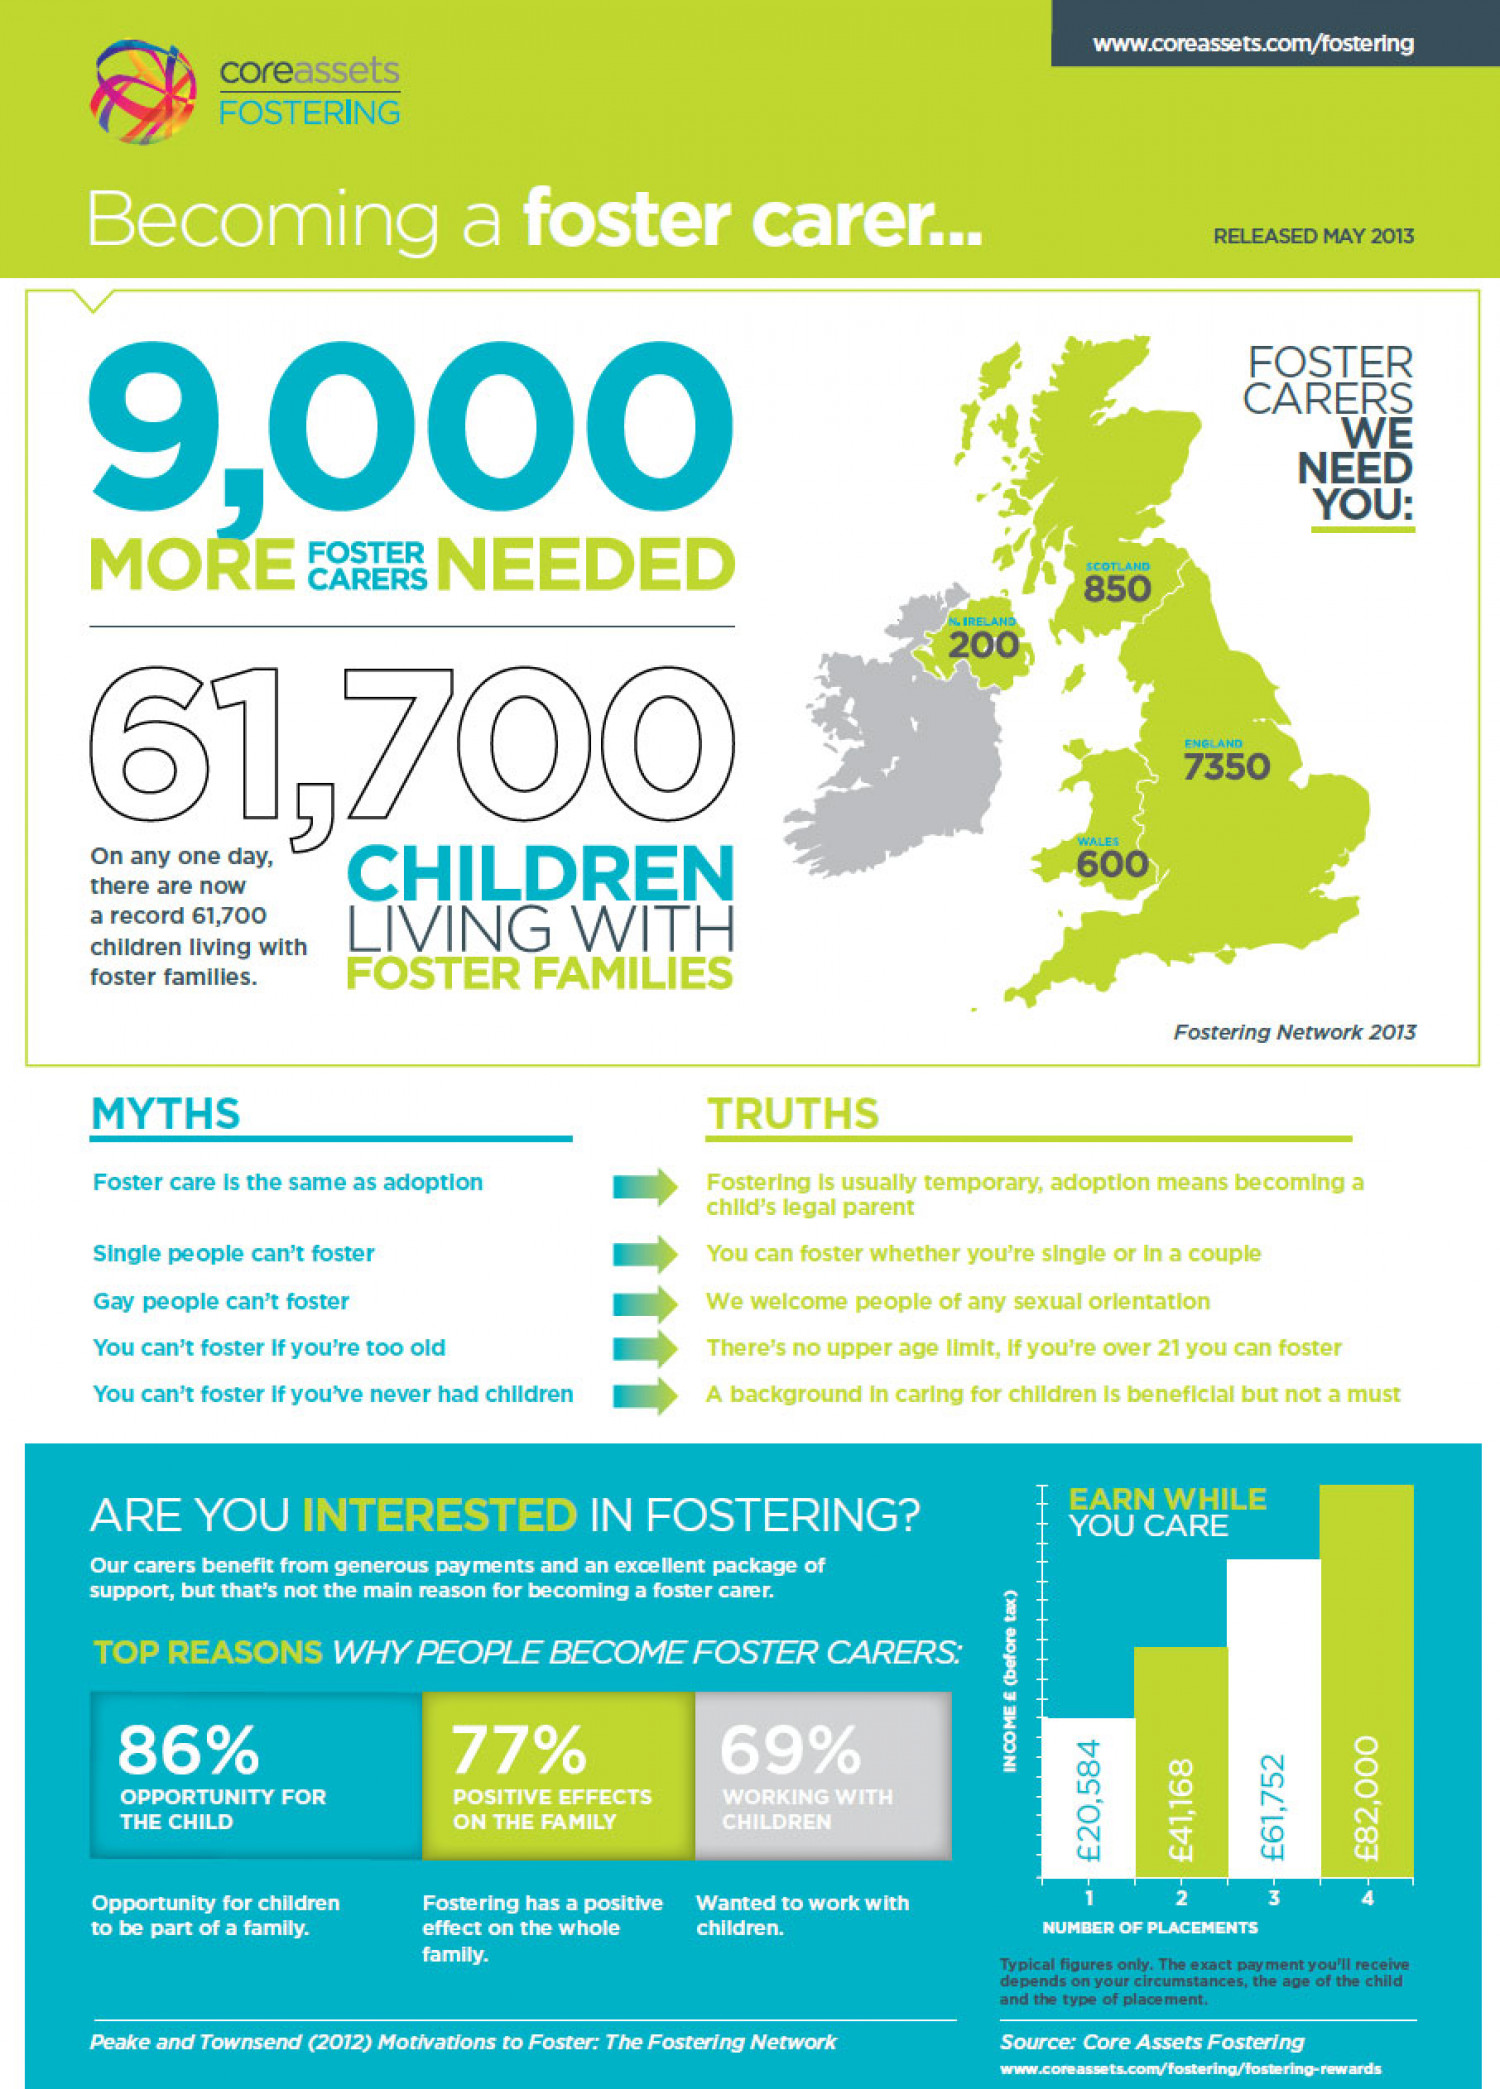 Core Assets Fostering - Become a Foster Carer Infographic